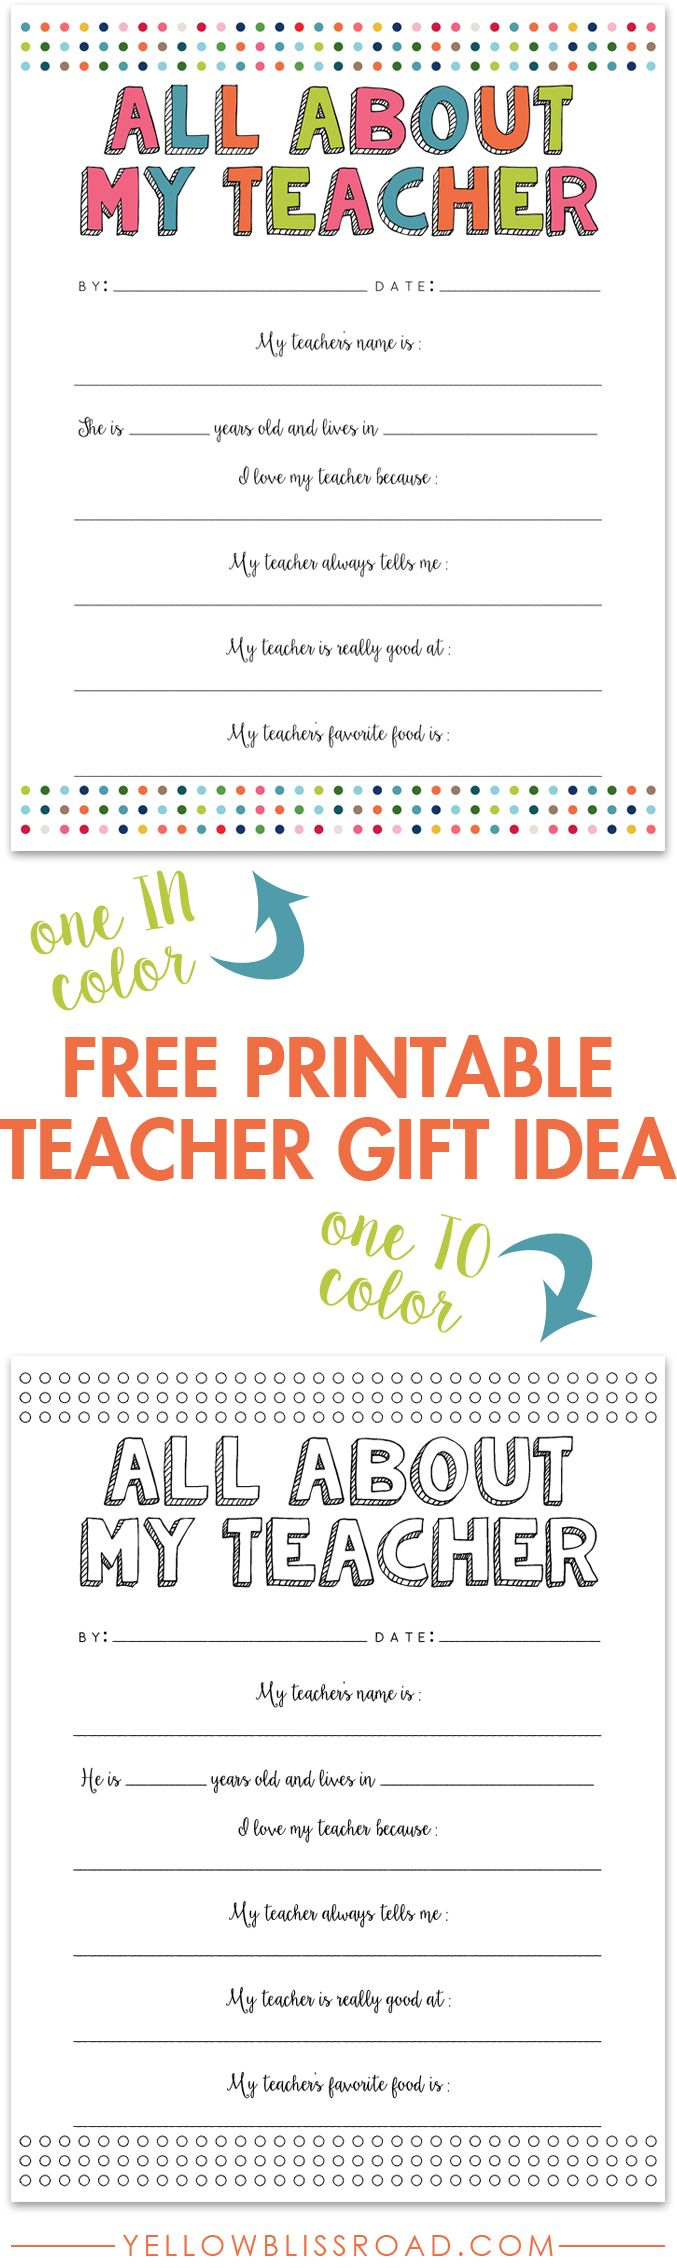 All About My Teacher Free Printable | Best Of Pinterest | Pinterest - All About My Teacher Free Printable